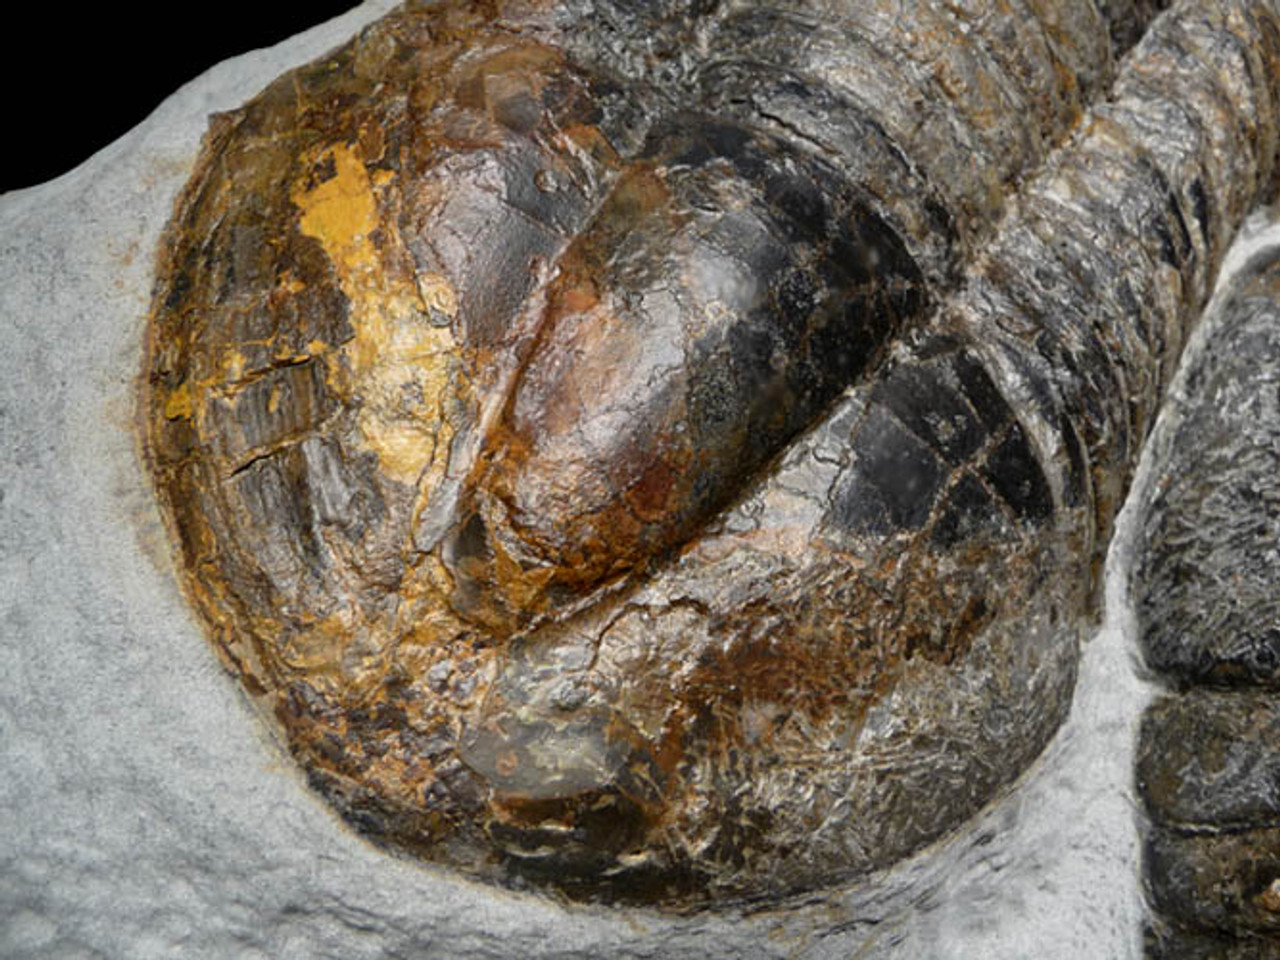 TRX-019 - SUBSTANTIAL FOSSIL OF LARGE ASAPHUS TRILOBITES IN NATURAL POSITIONS AS FOUND